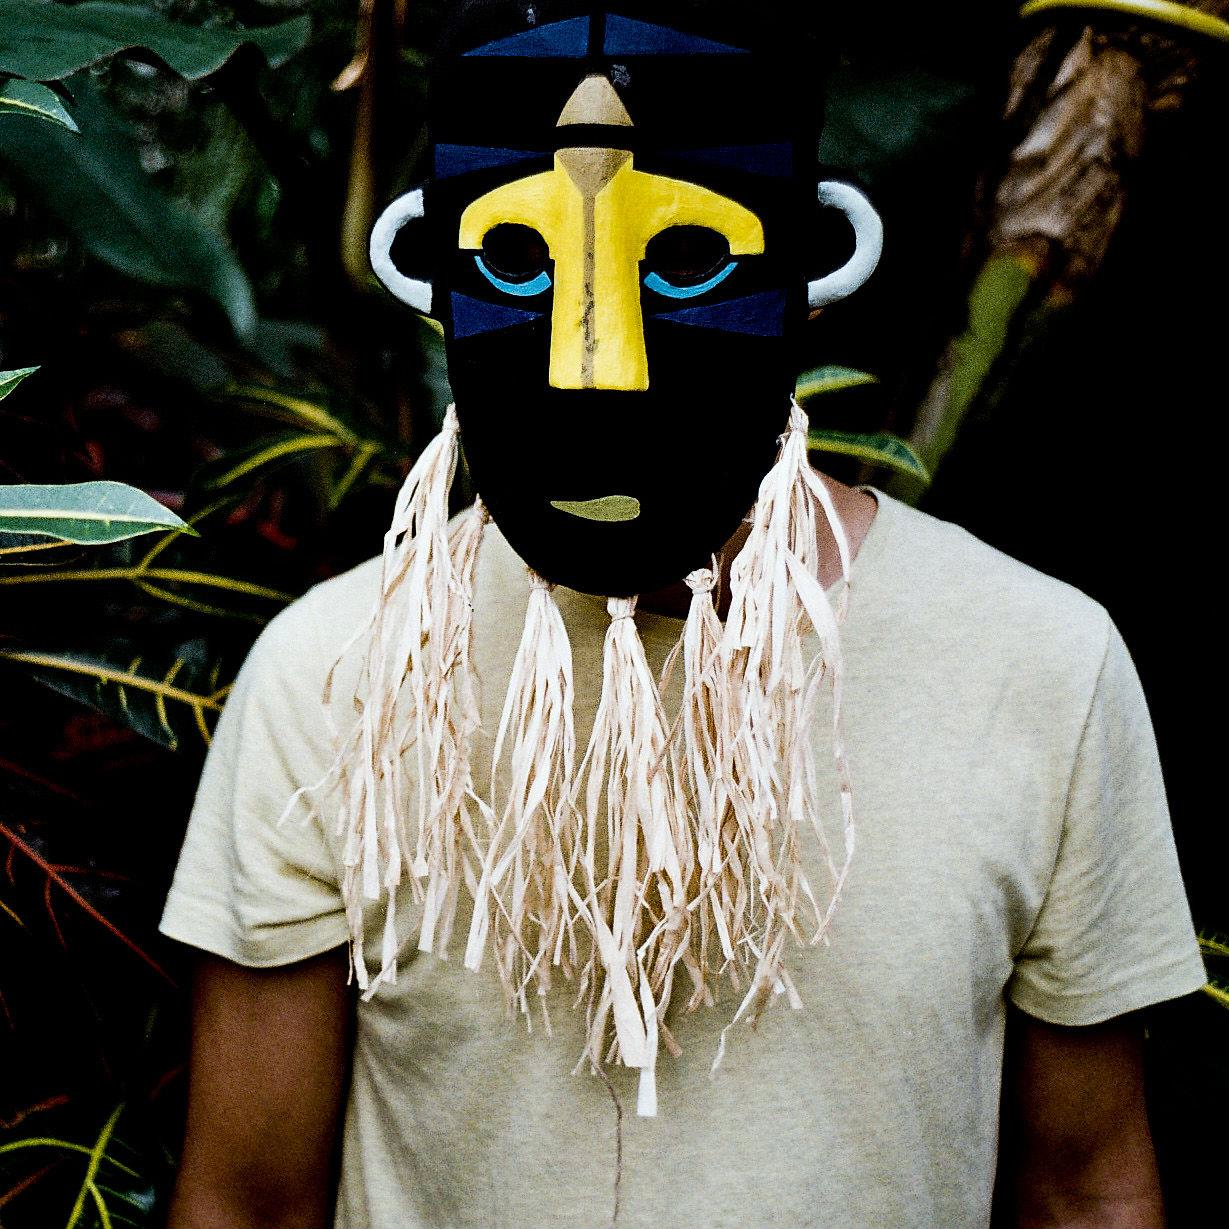 representation artists jusice sbtrkt within electronic music Sbtrkt in recent years, aaron jerome has quietly produced some of the 21st century's most lauded electronic music under the name sbtrkt though jerome has two accomplished albums to his name, perhaps sbtrkt's most vital work has been his catalogue of remixes, which include cuts for.